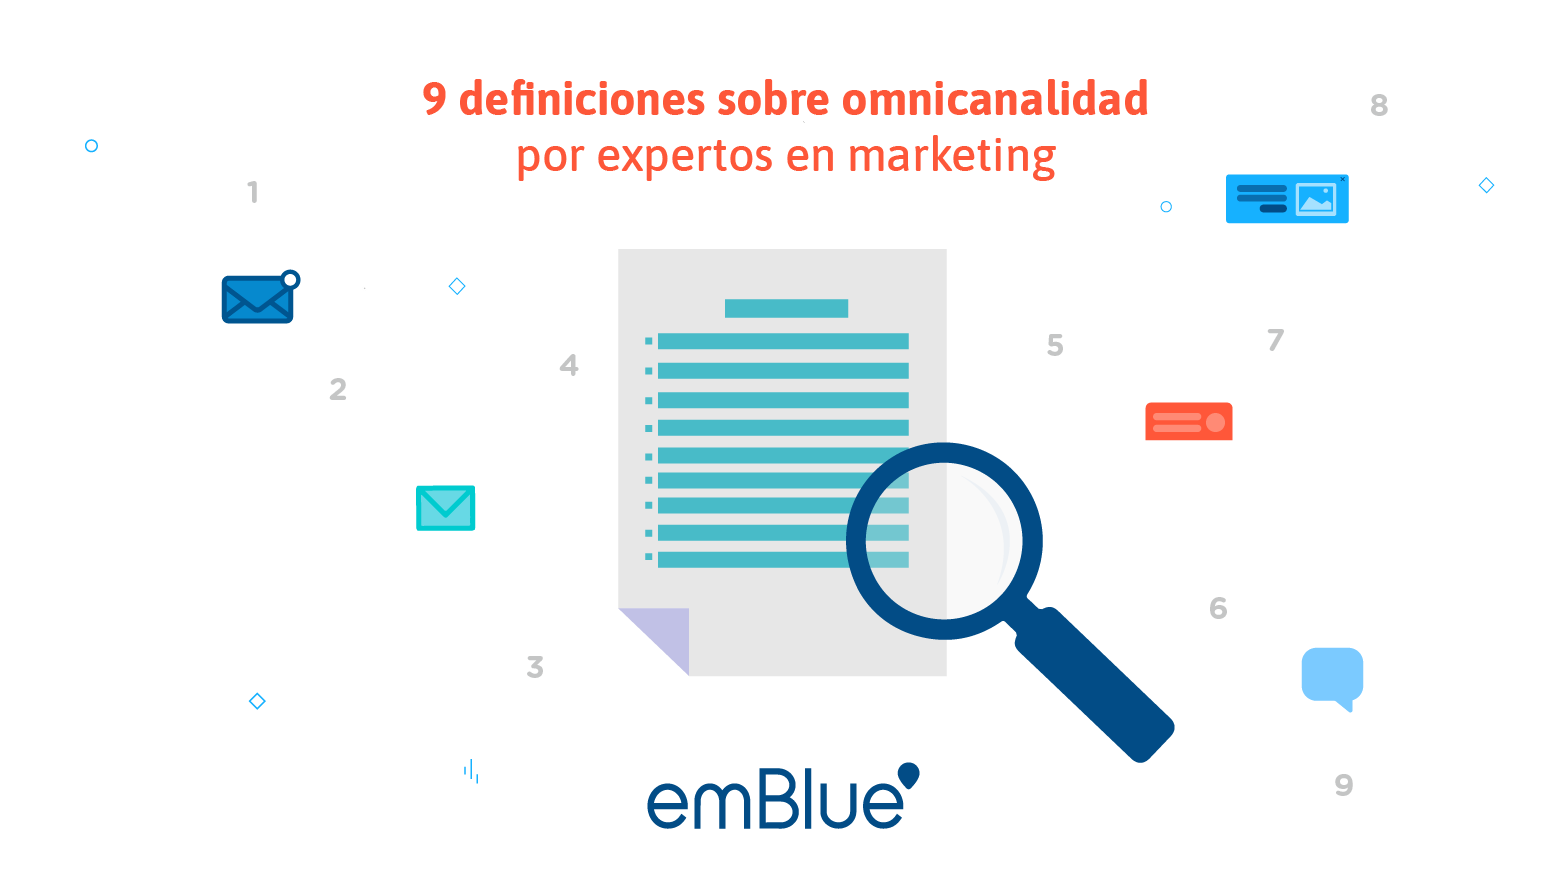 9 definiciones sobre omnicanalidad por expertos en marketing